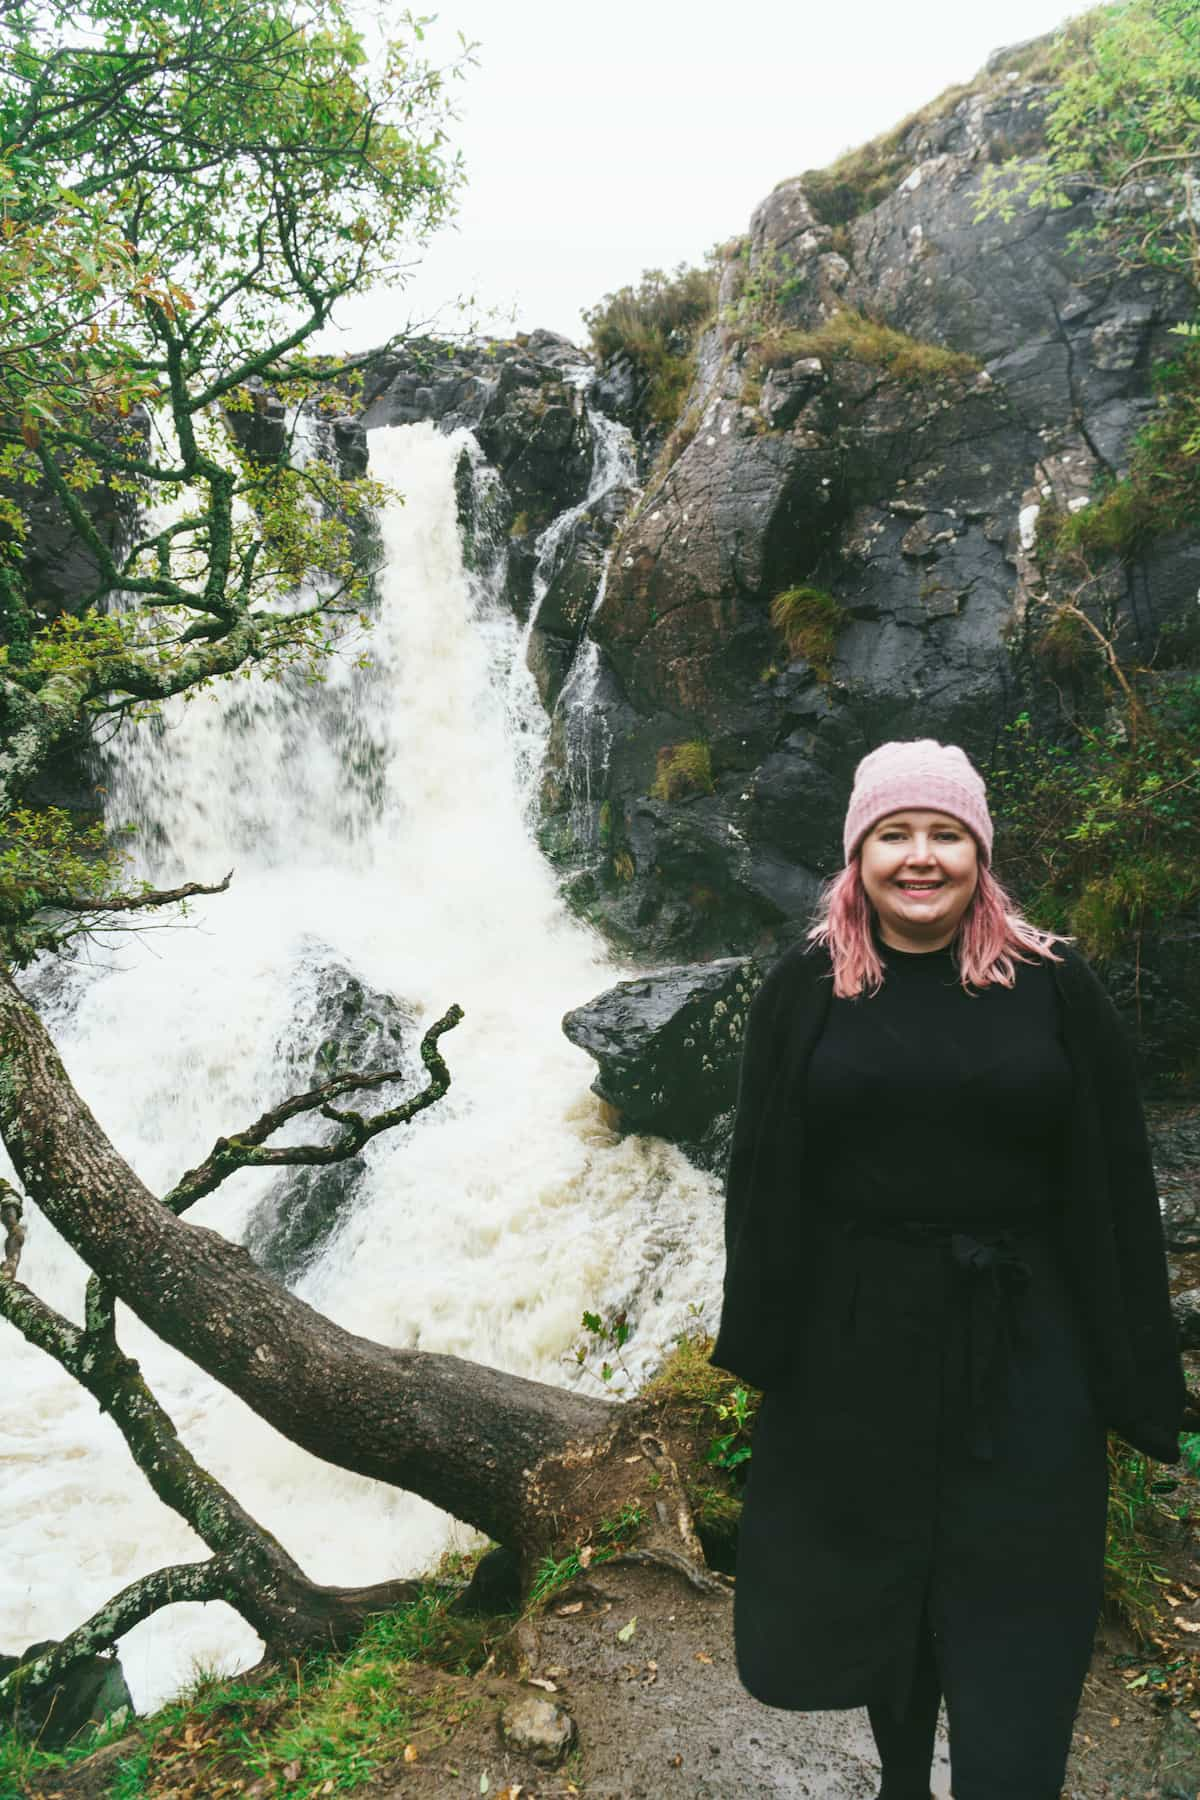 Kat at a waterfall on the Isle of Mull